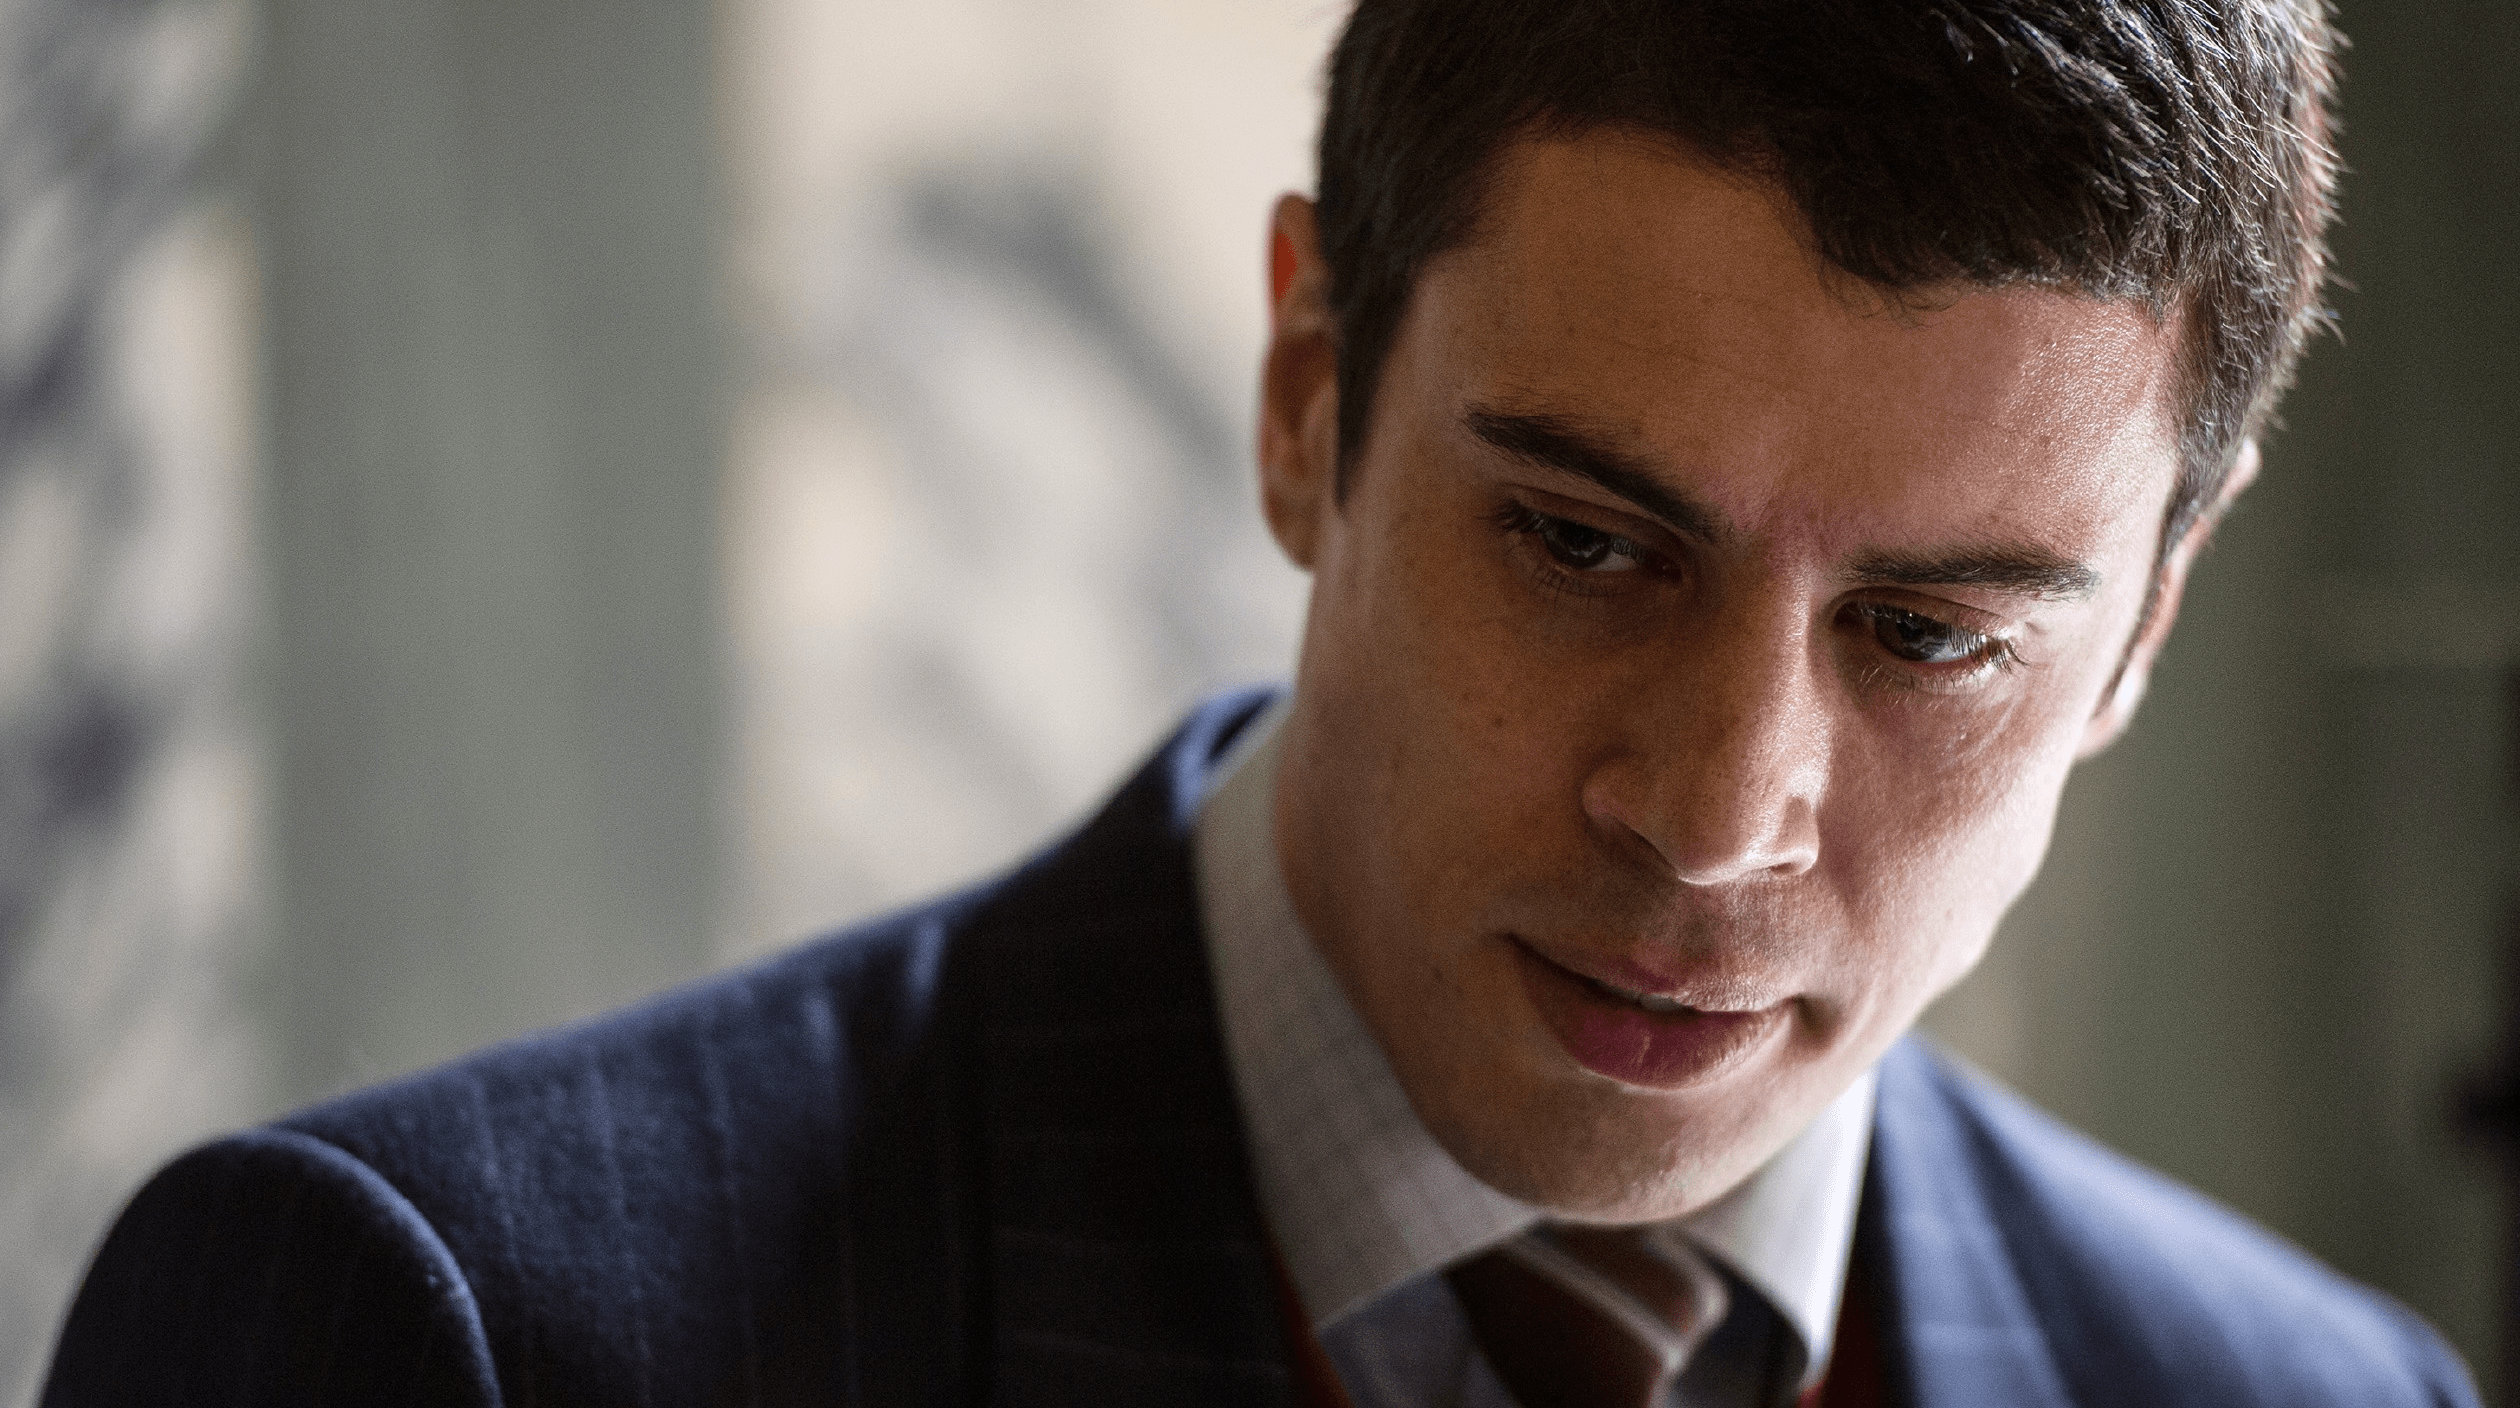 Toby Kebbell Png - Toby Kebbell to Play the Villainous Messala in Ben-Hur Remake